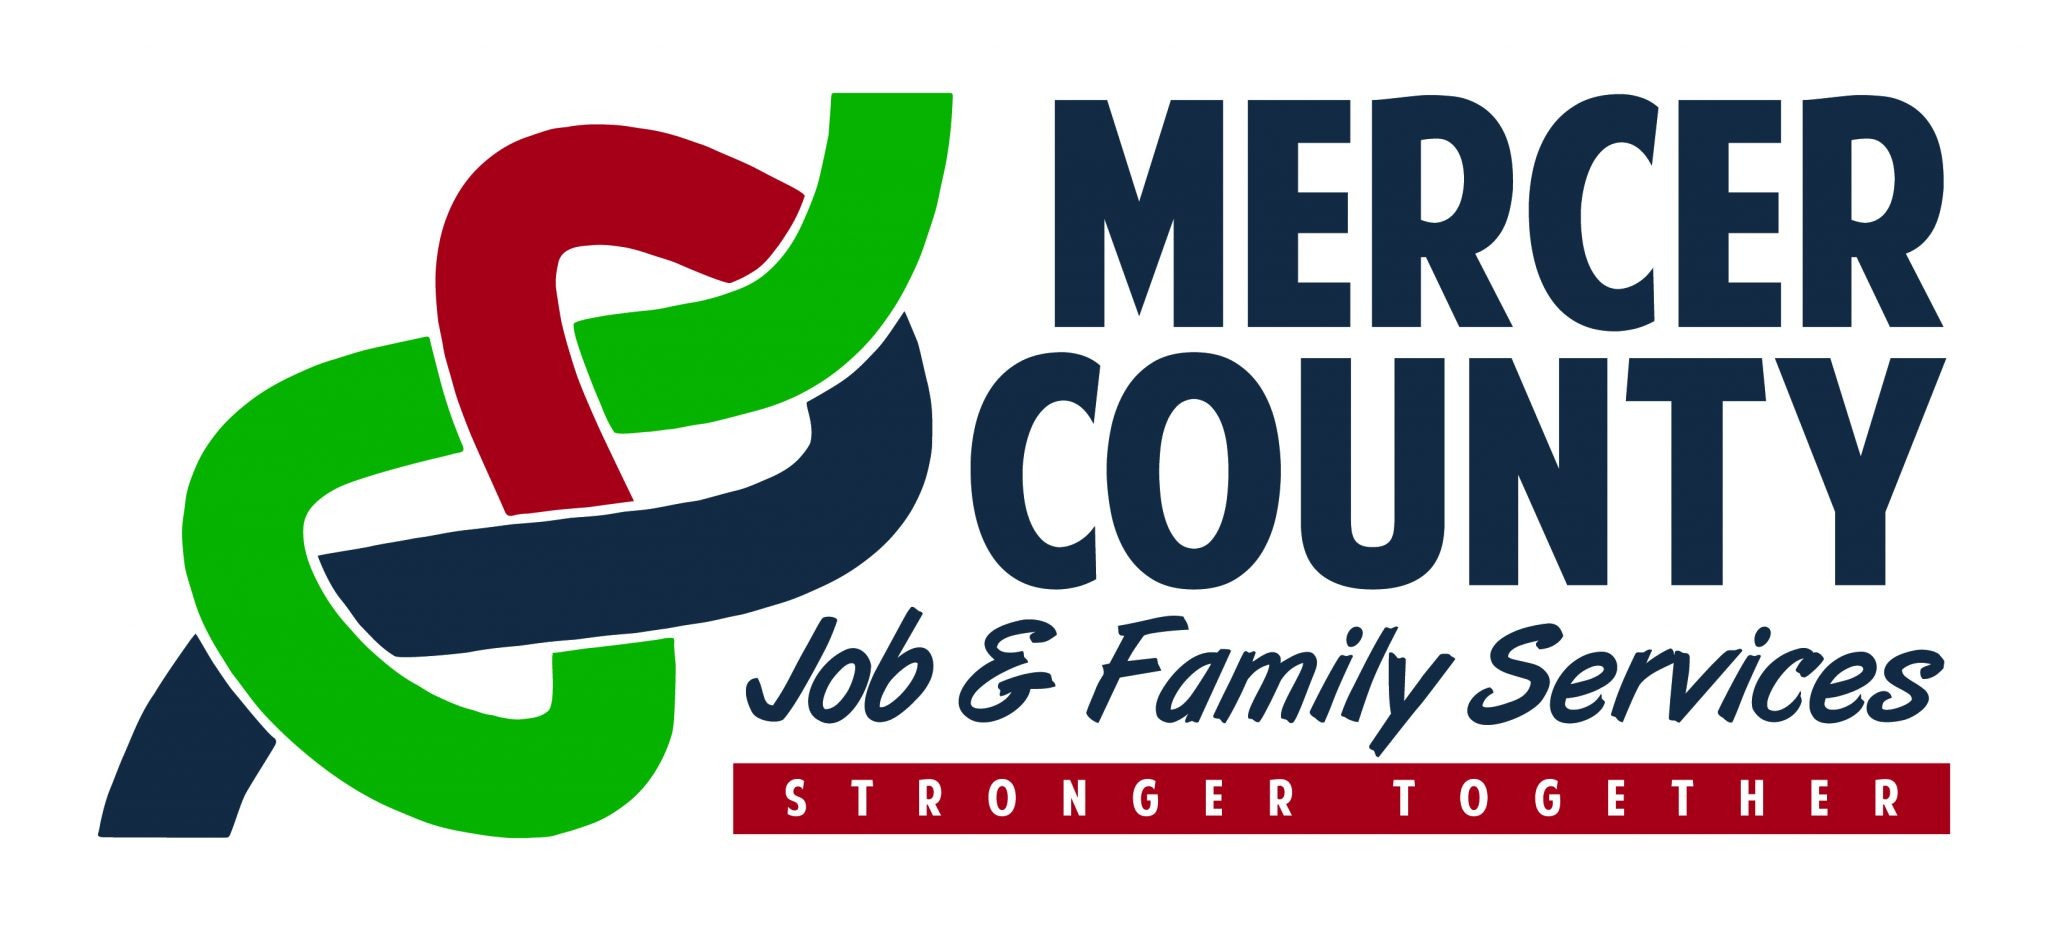 Job & Family Services, logo, stronger together